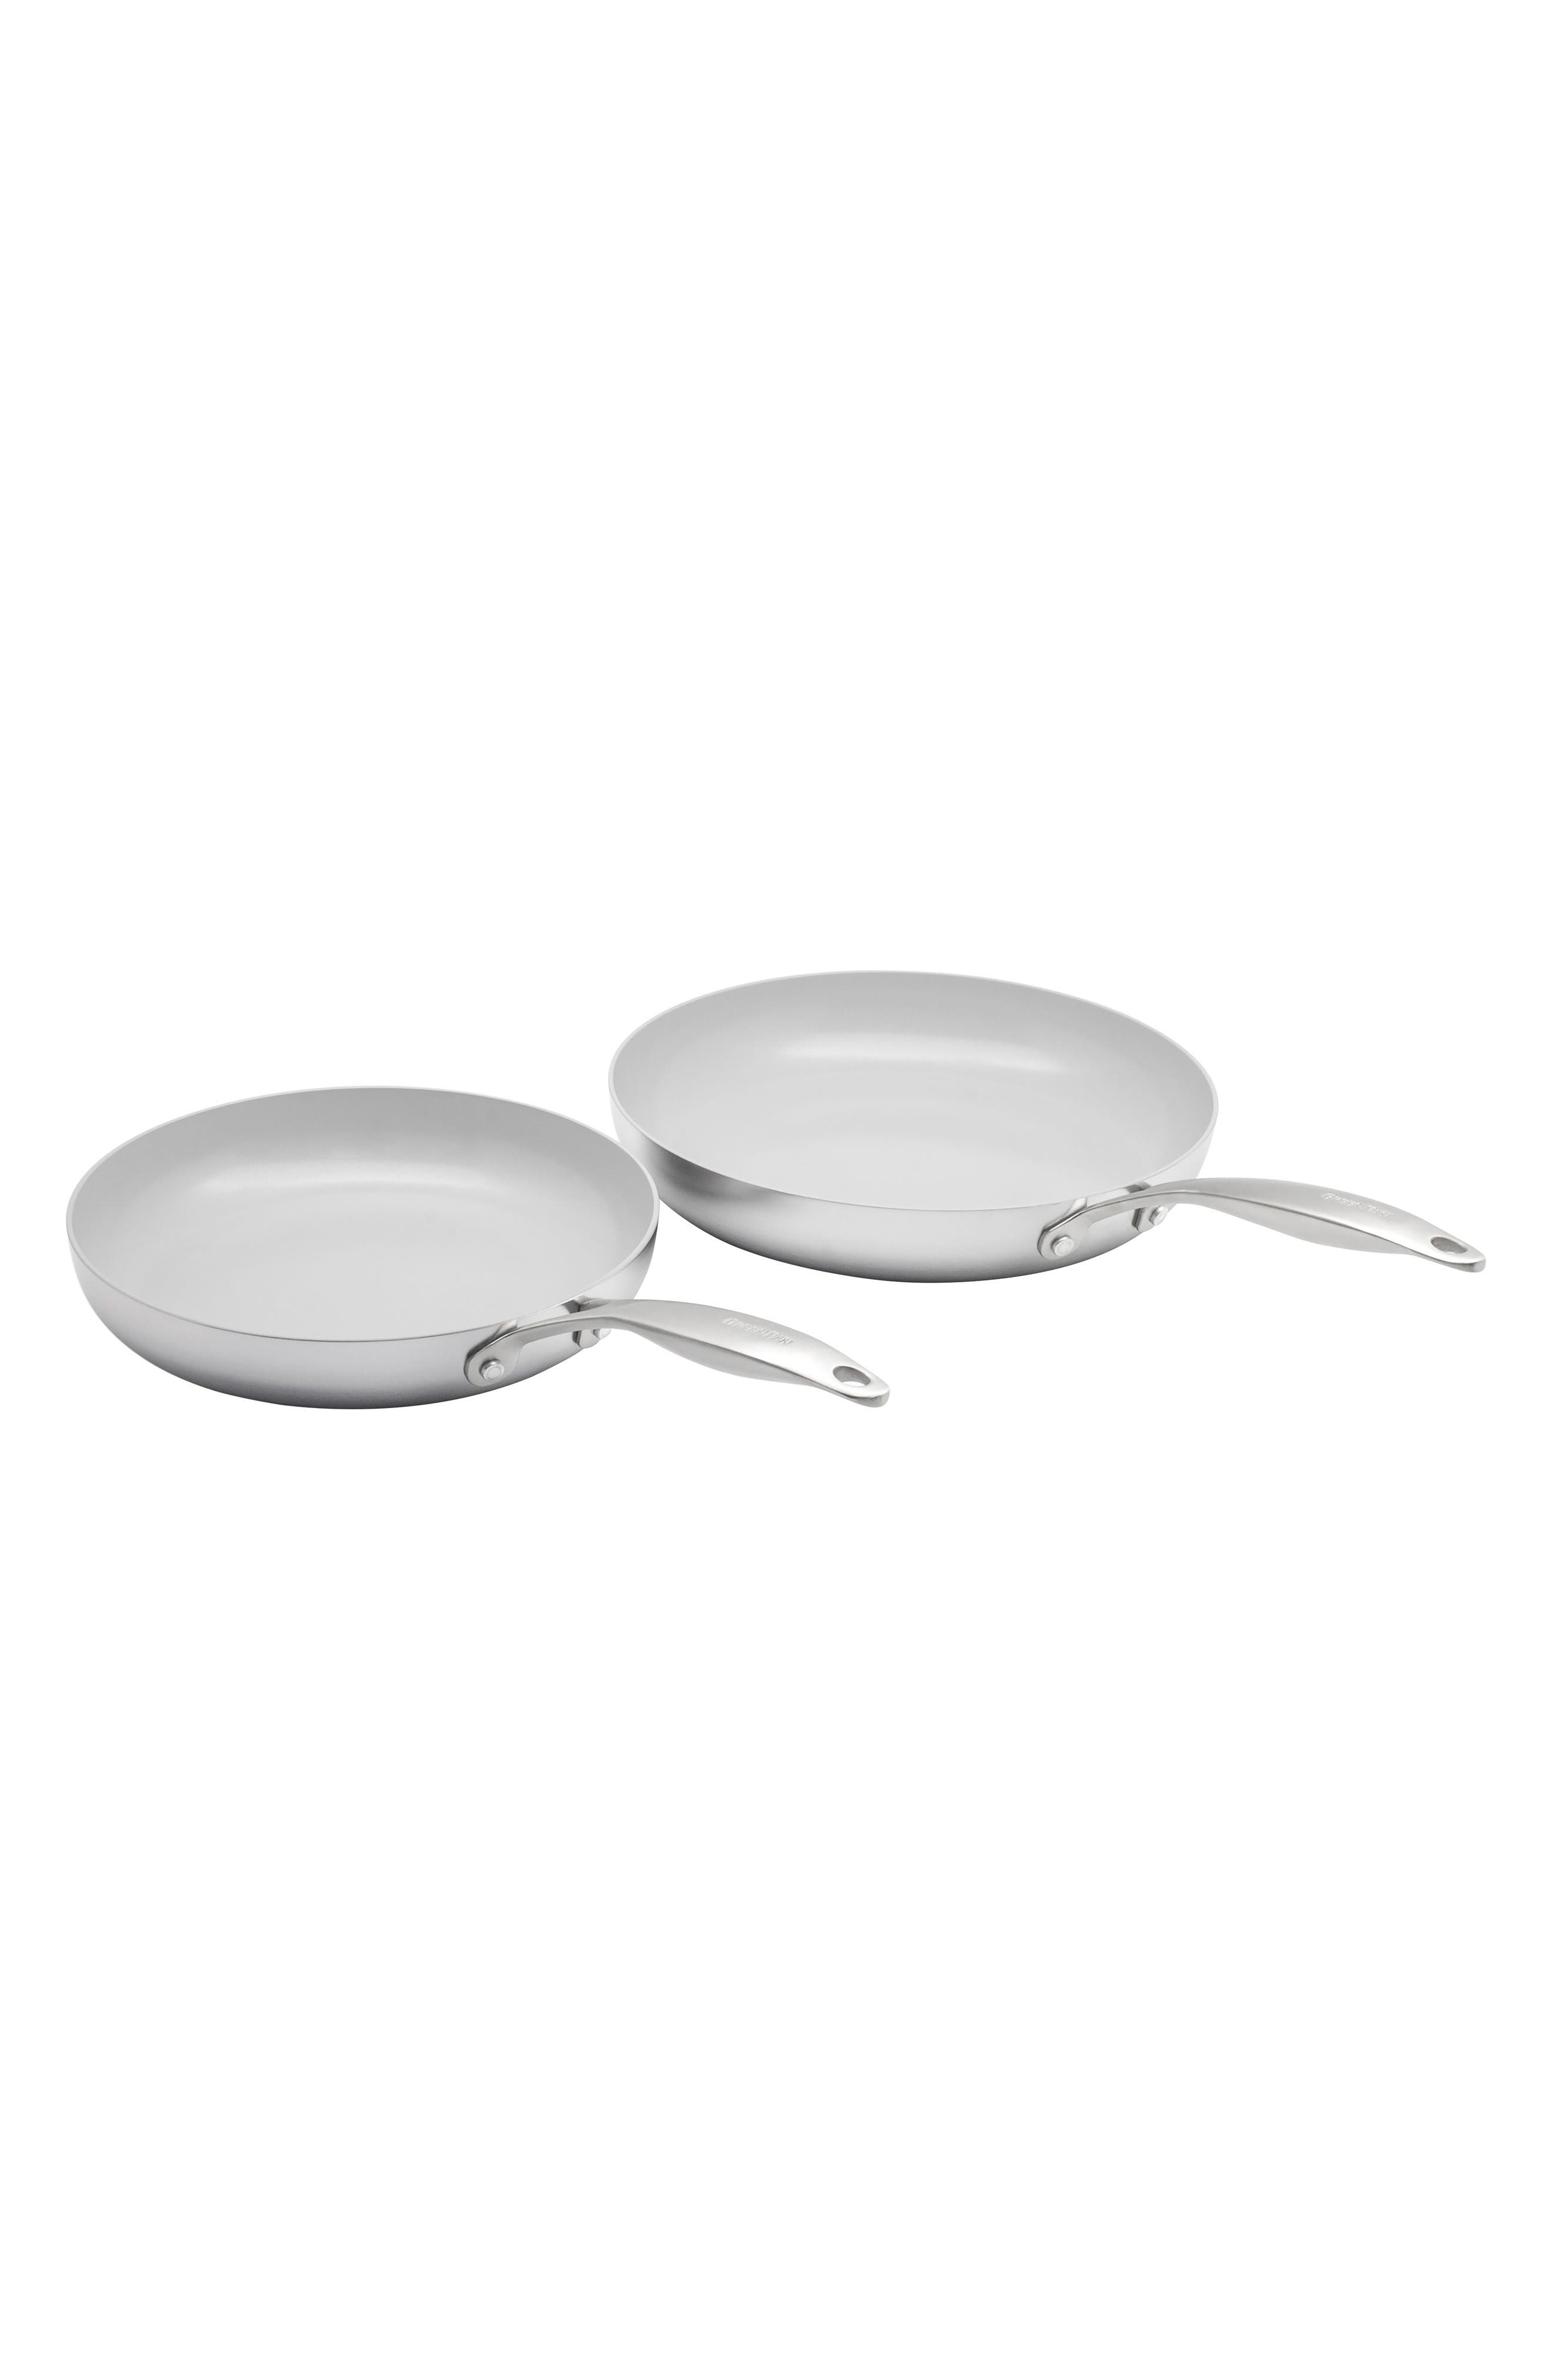 Alternate Image 1 Selected - GreenPan Venice Pro 10-Inch & 12-Inch Multilayer Stainless Steel Ceramic Nonstick Frying Pan Set